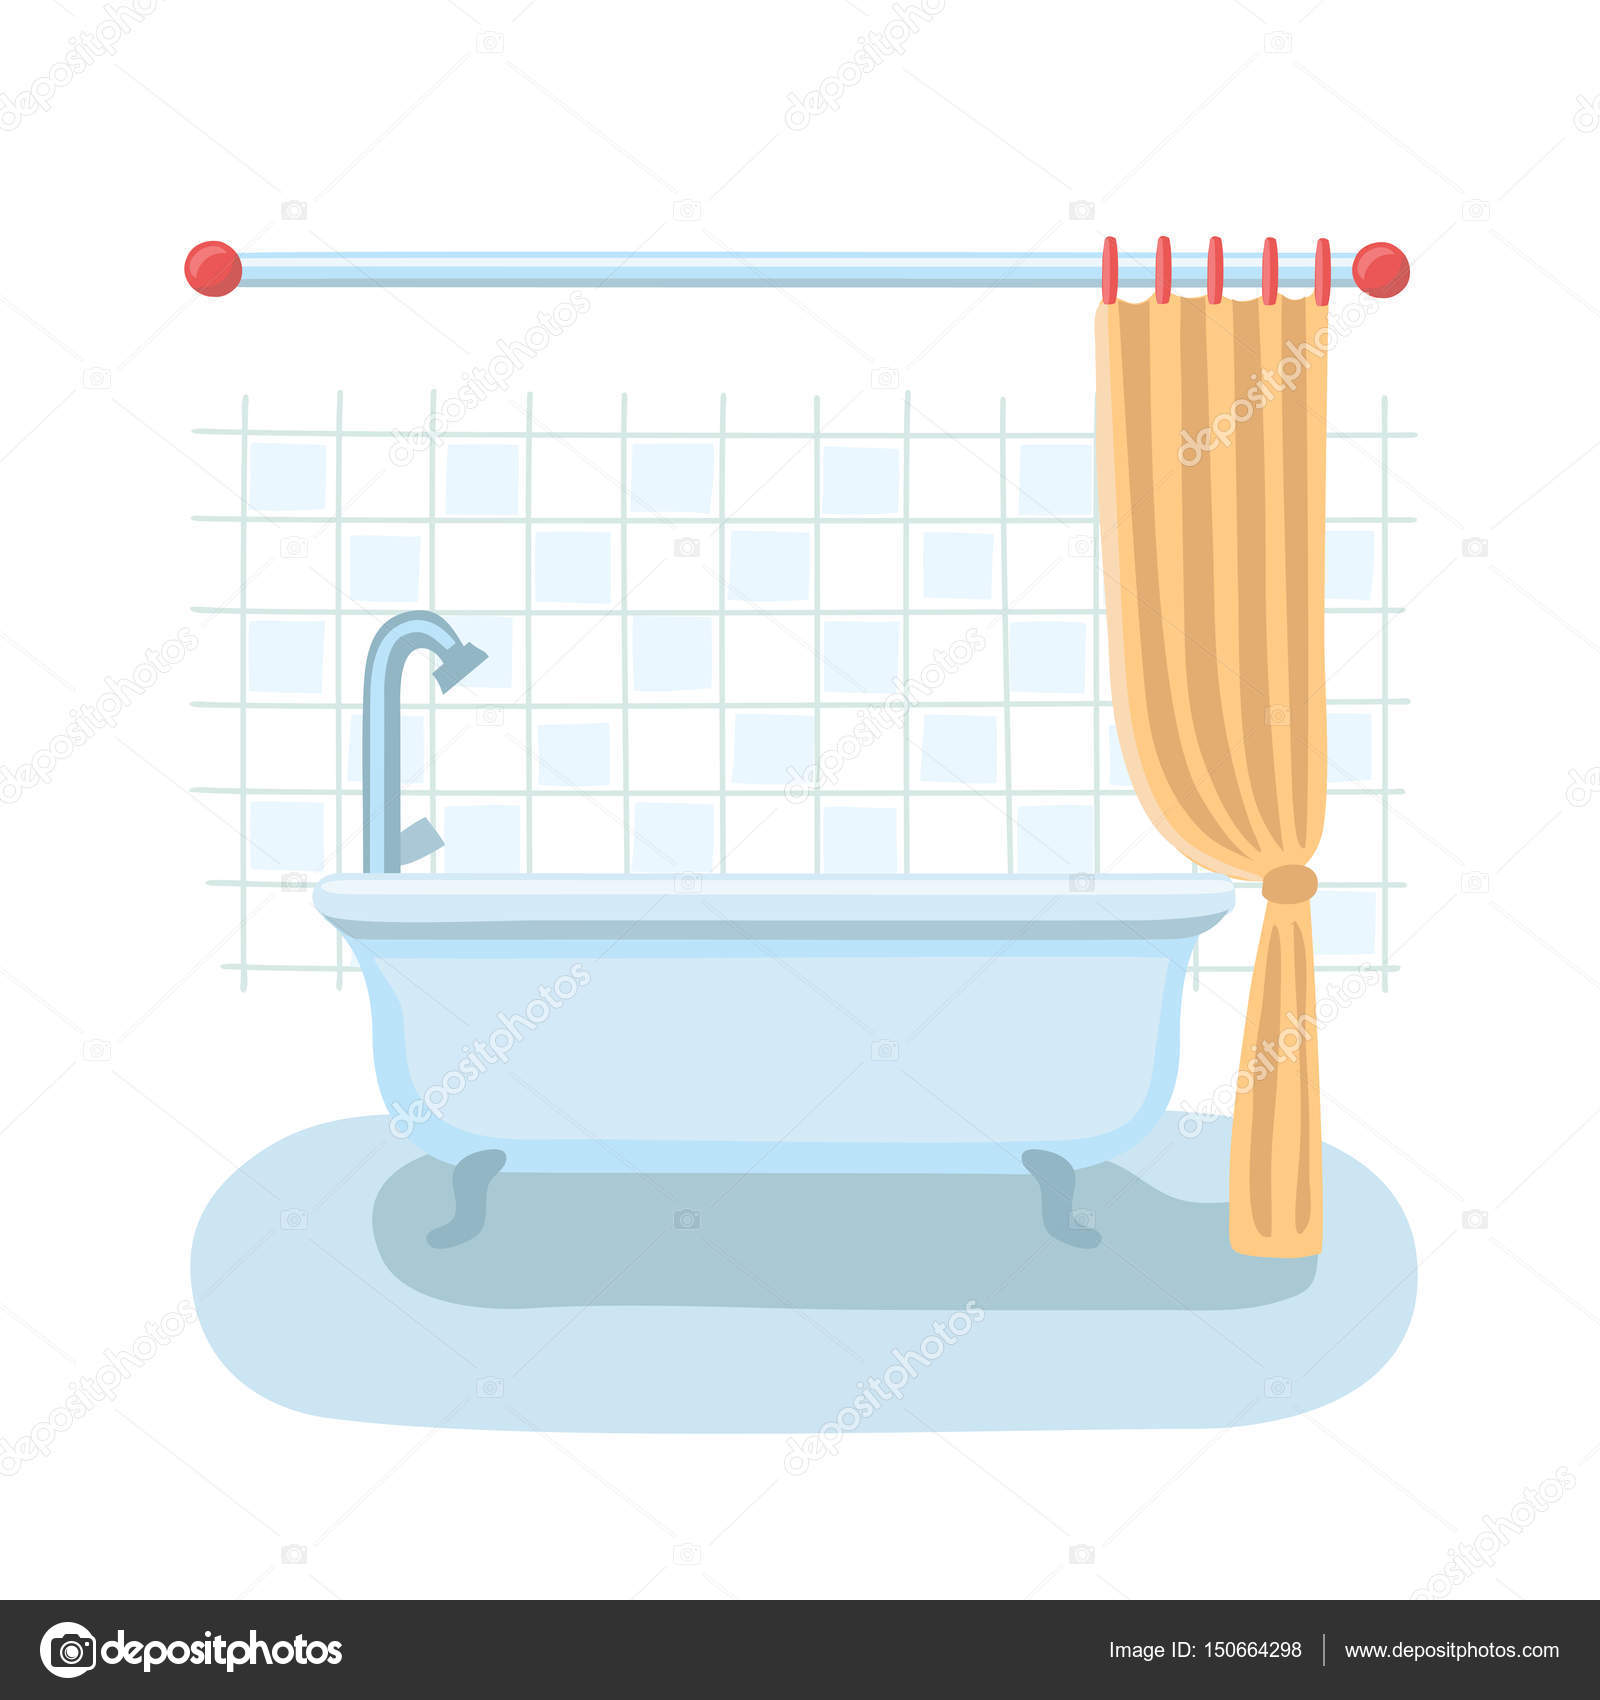 Cartoon Pictures Of Bathrooms: Bathroom Shower Interior In Flat Cartoon Vector Style With